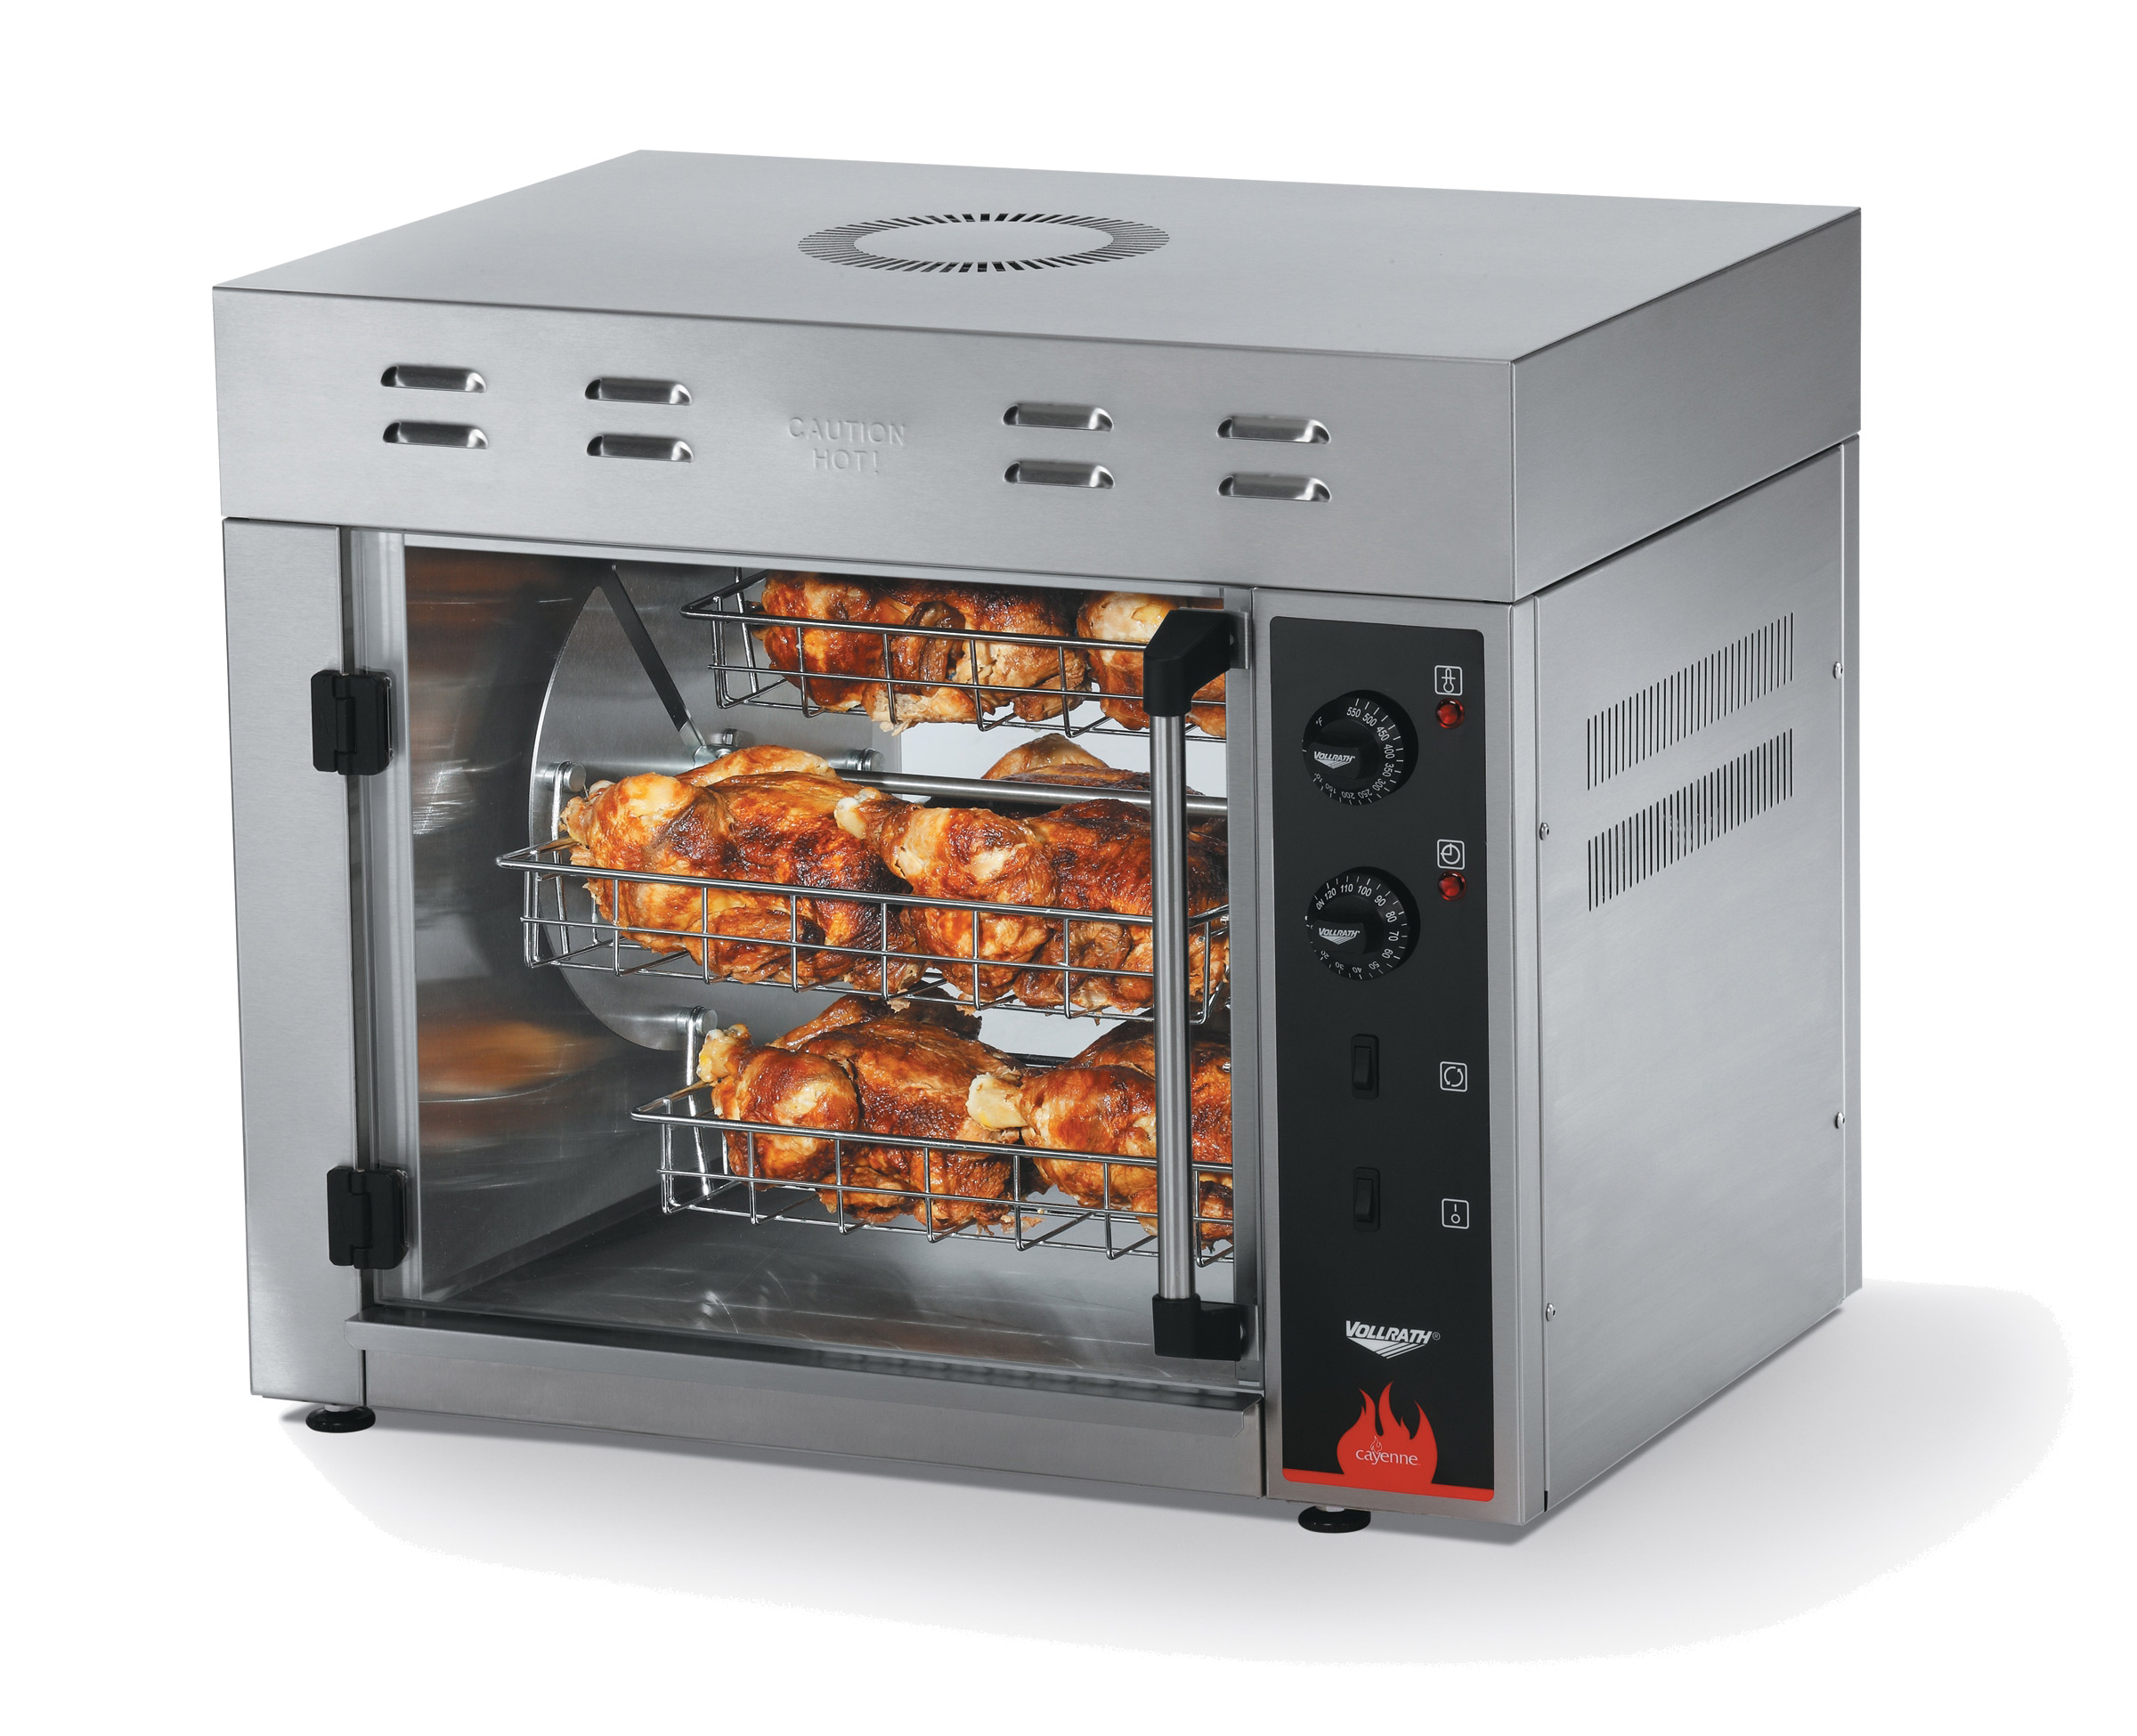 Vollrath 40841 oven, electric, rotisserie